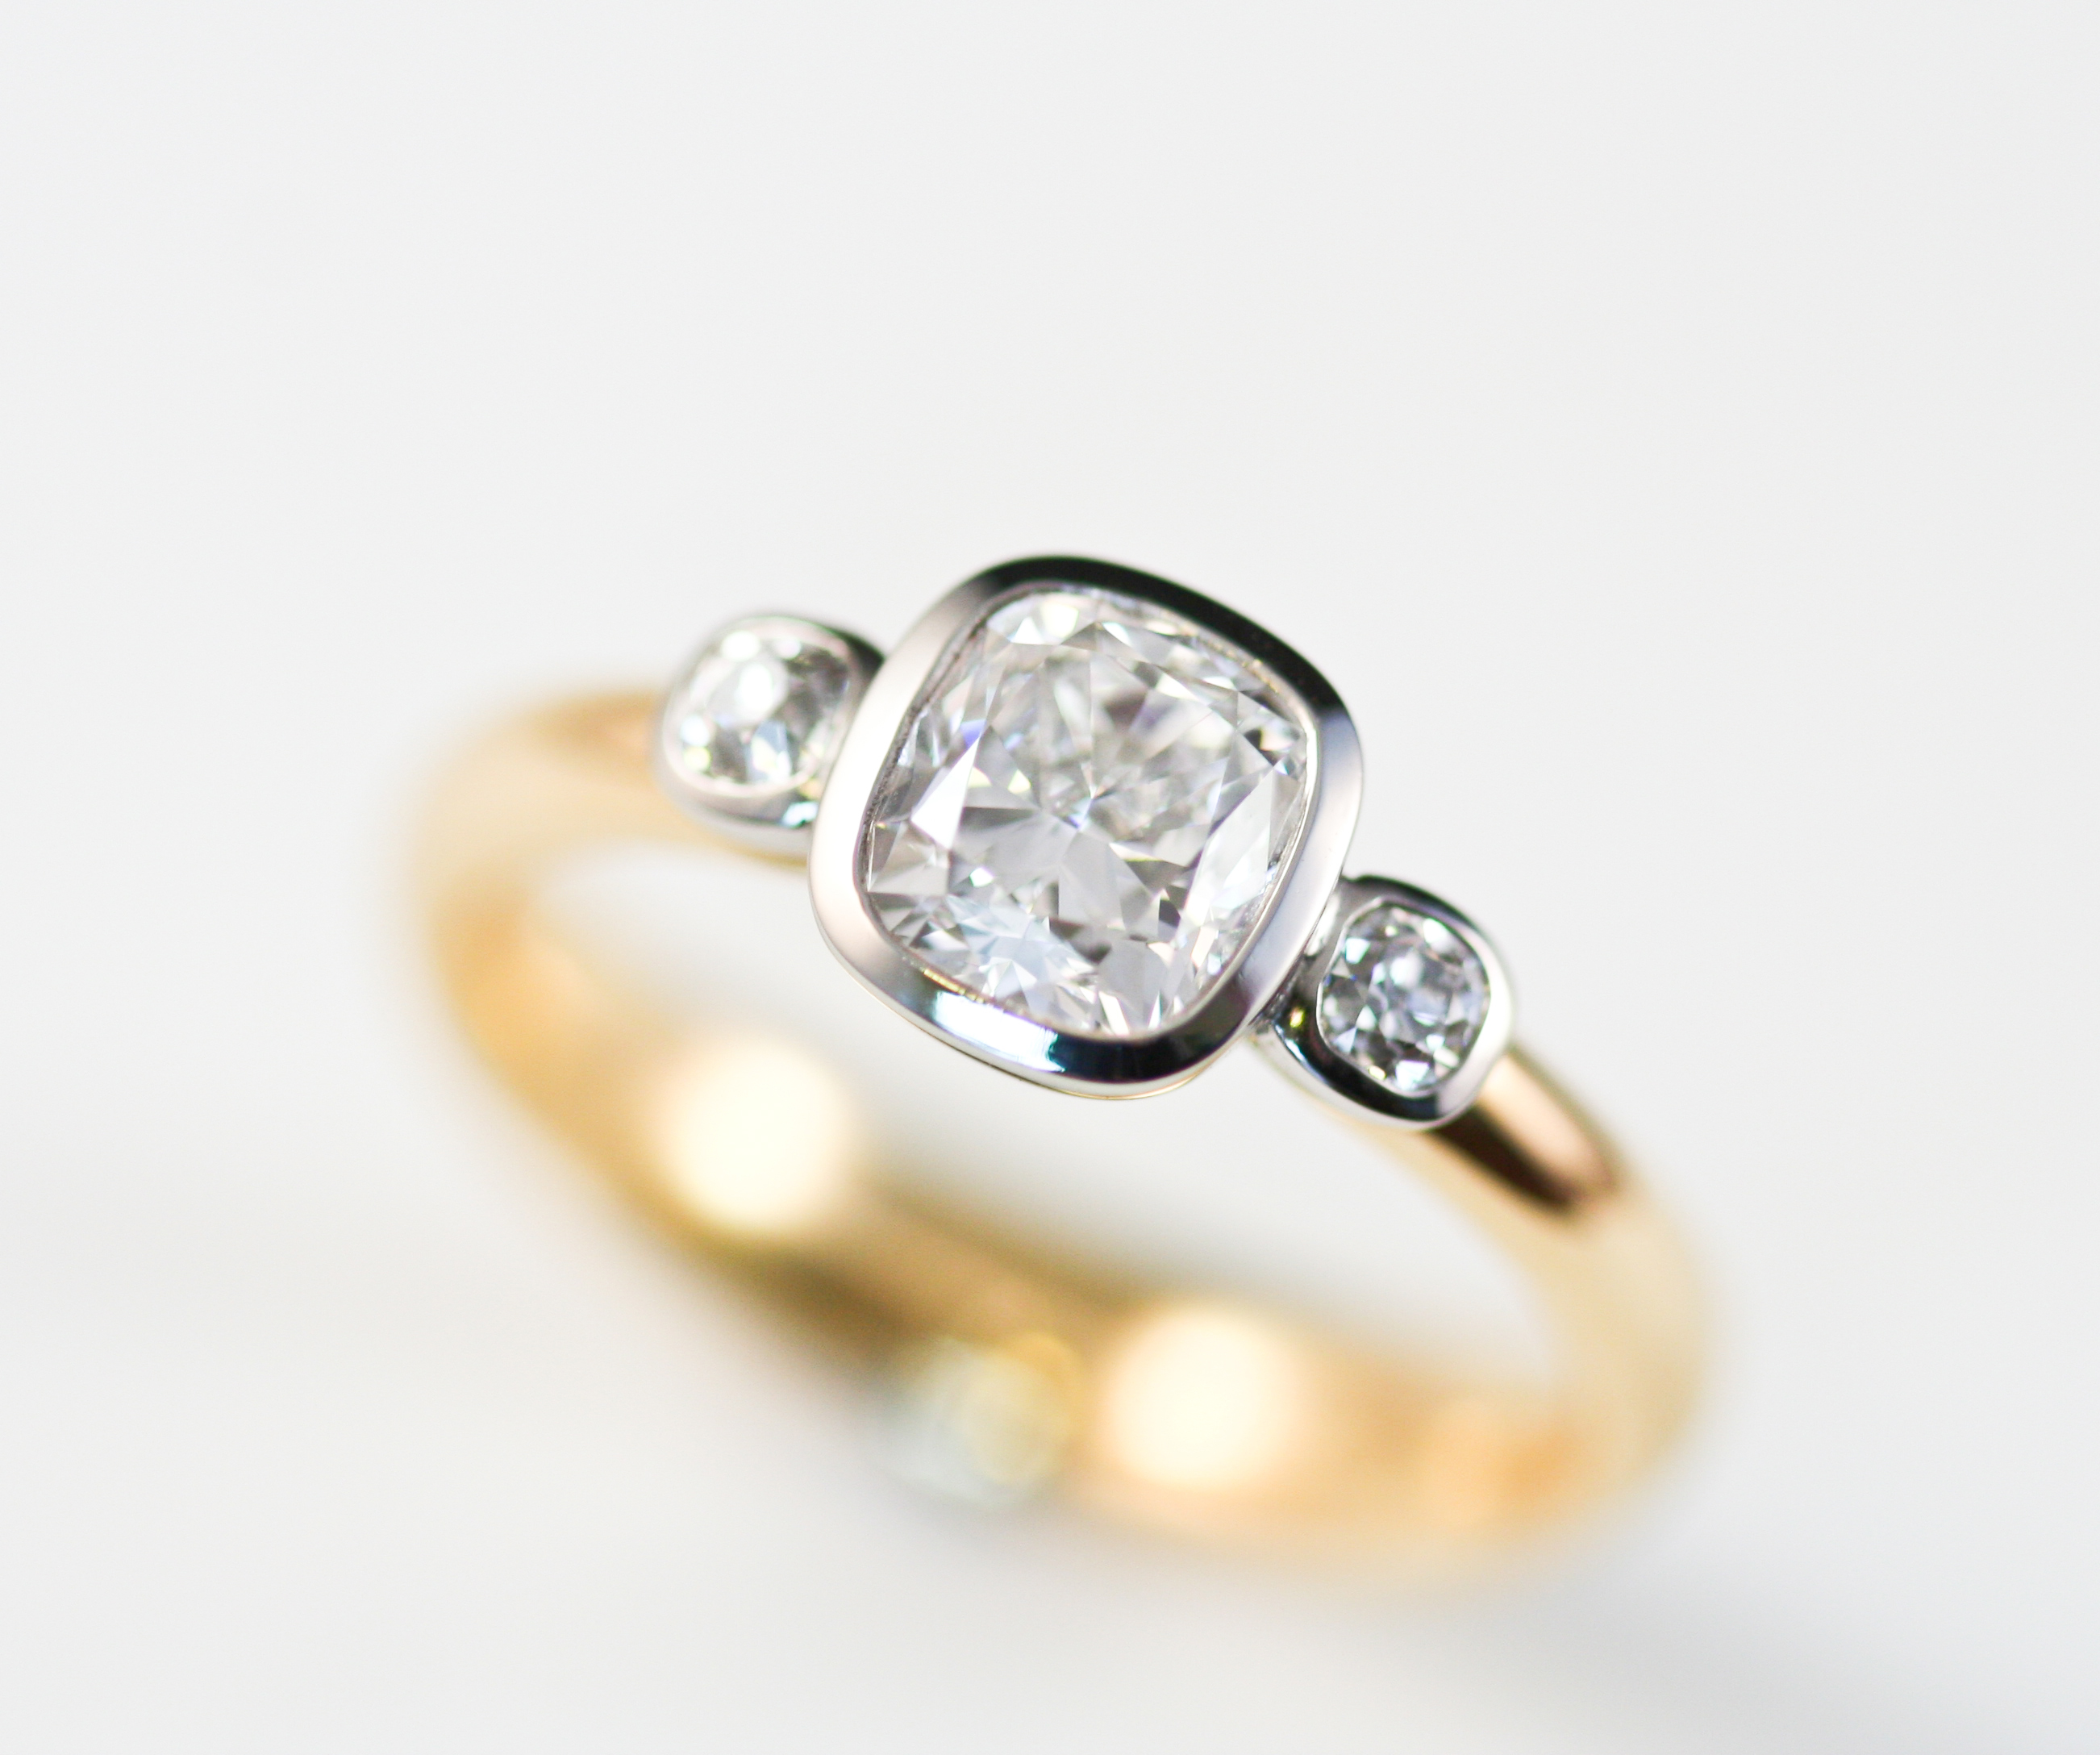 18ct & platinum diamond ring